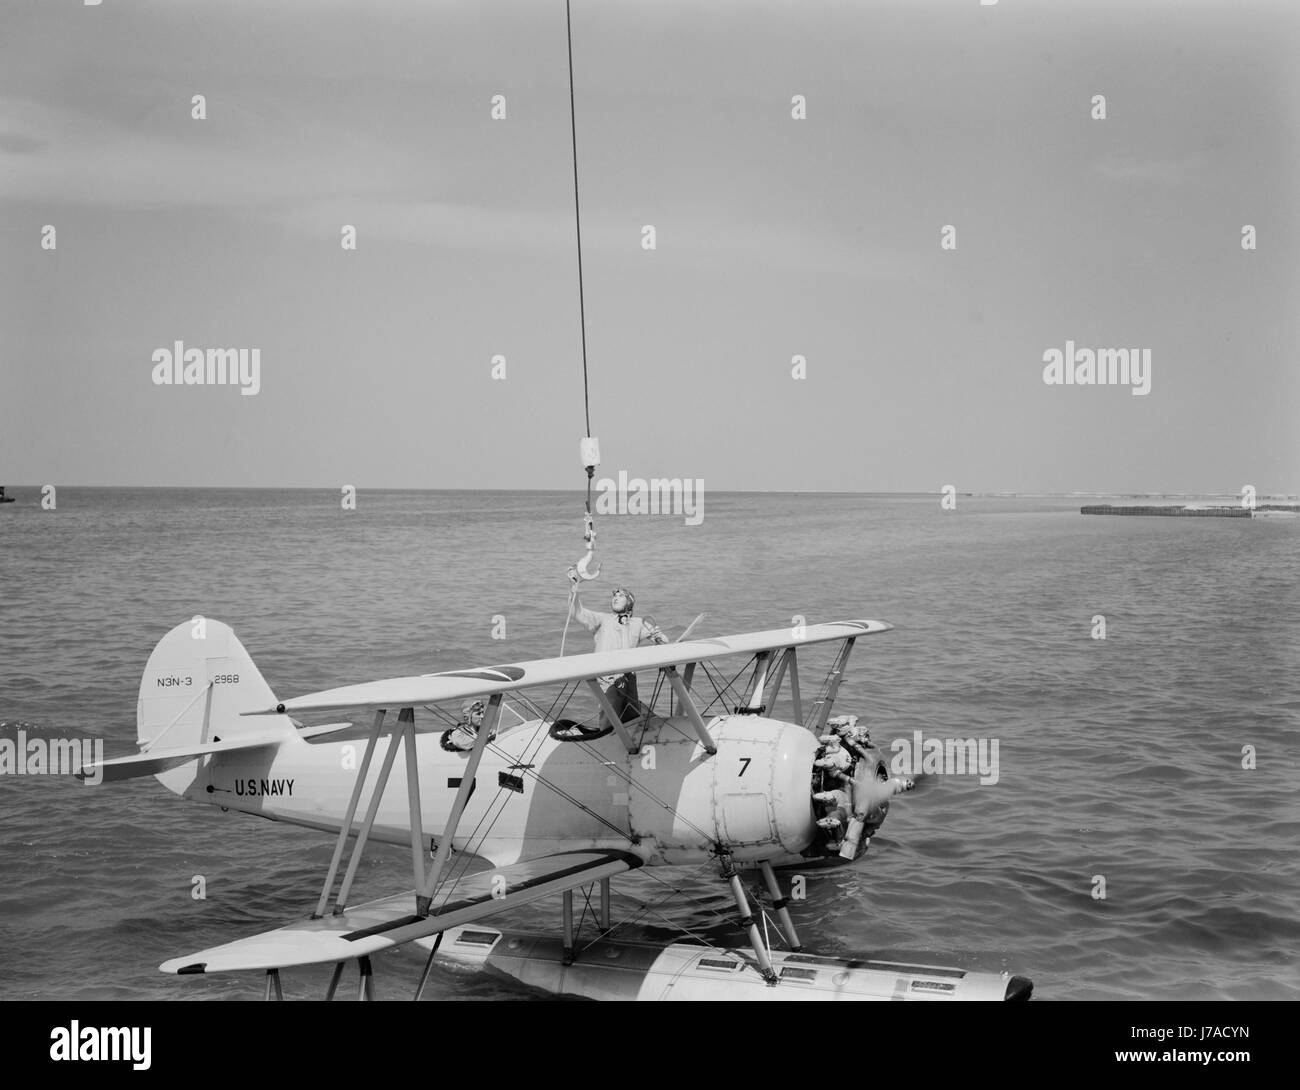 A U.S. Navy N3N seaplane being attached to a hook, then hoisted out of the water, 1942. - Stock Image